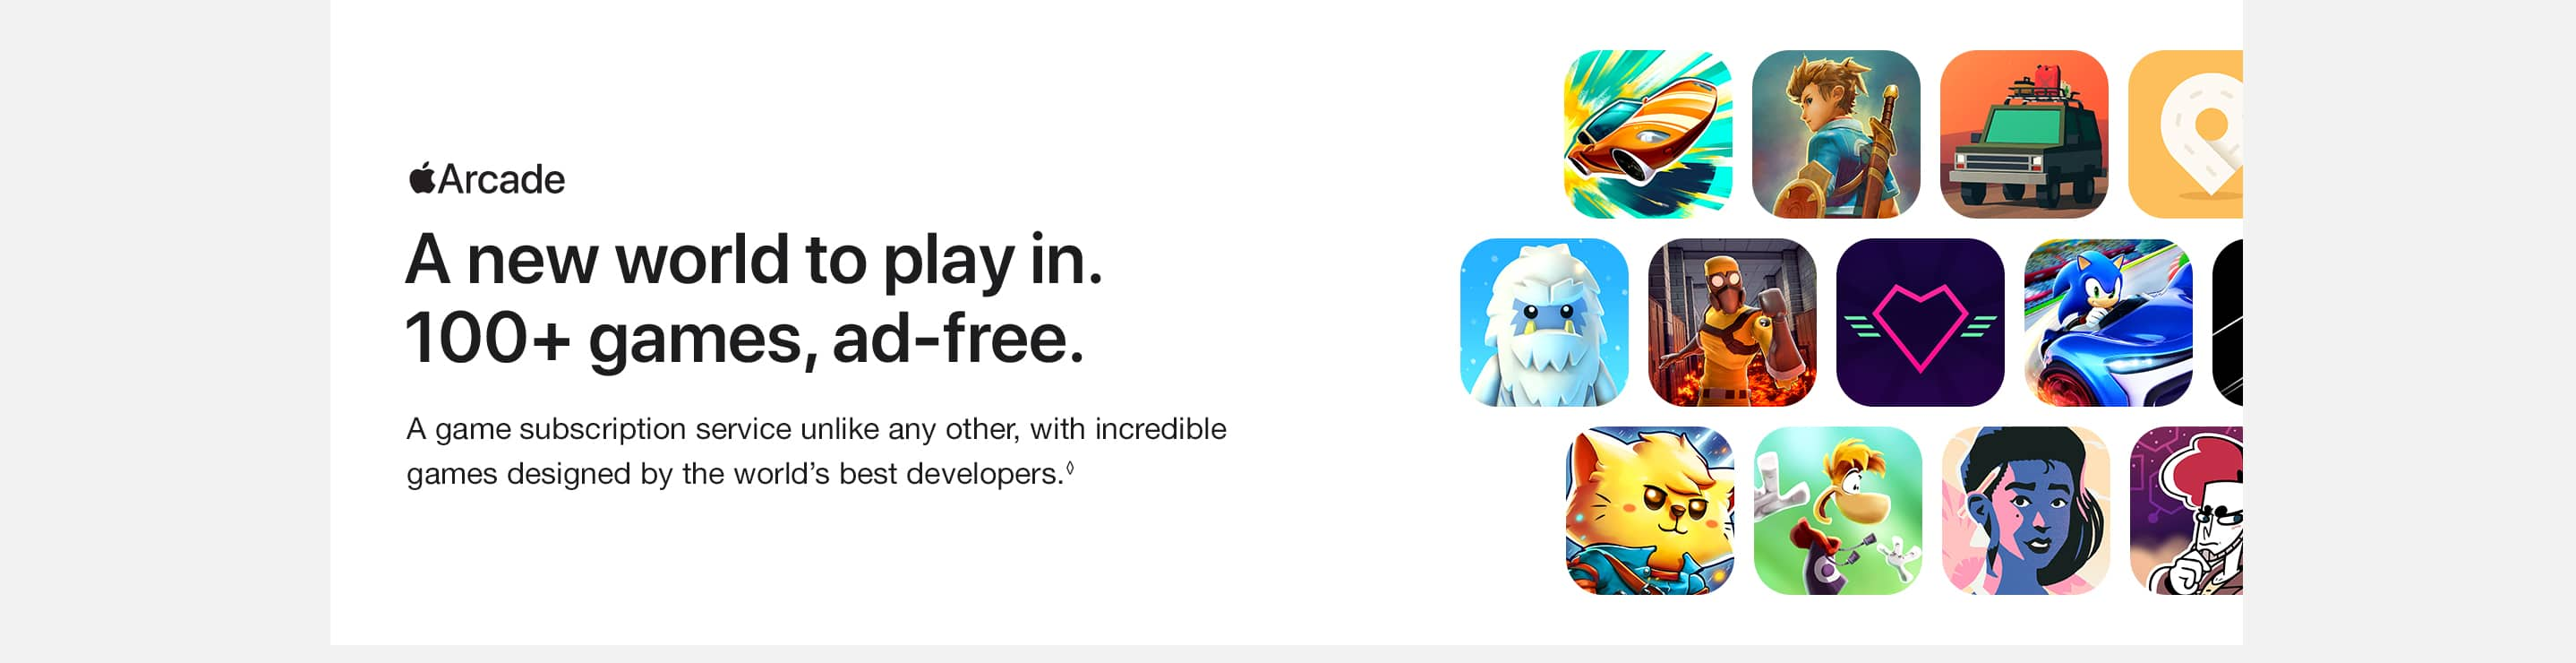 Apple Arcade. A new world to play in. 100+ games, ad-free. A game subscription service unlike any other, with incredible games designed by the world's best developers.(◊)